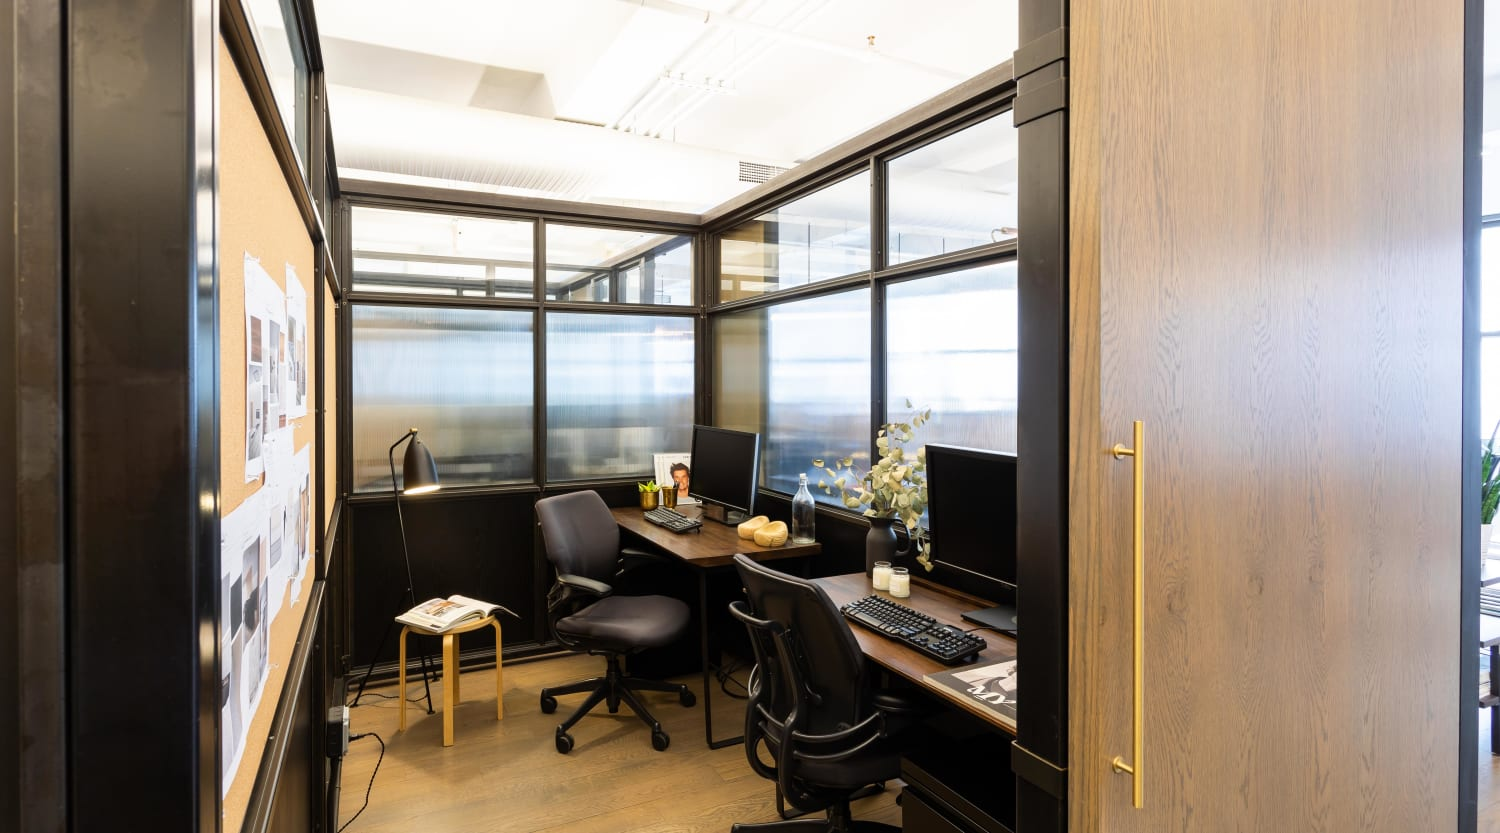 135 Madison Avenue, 8th Floor, Room Luxury Private Office (2 person)